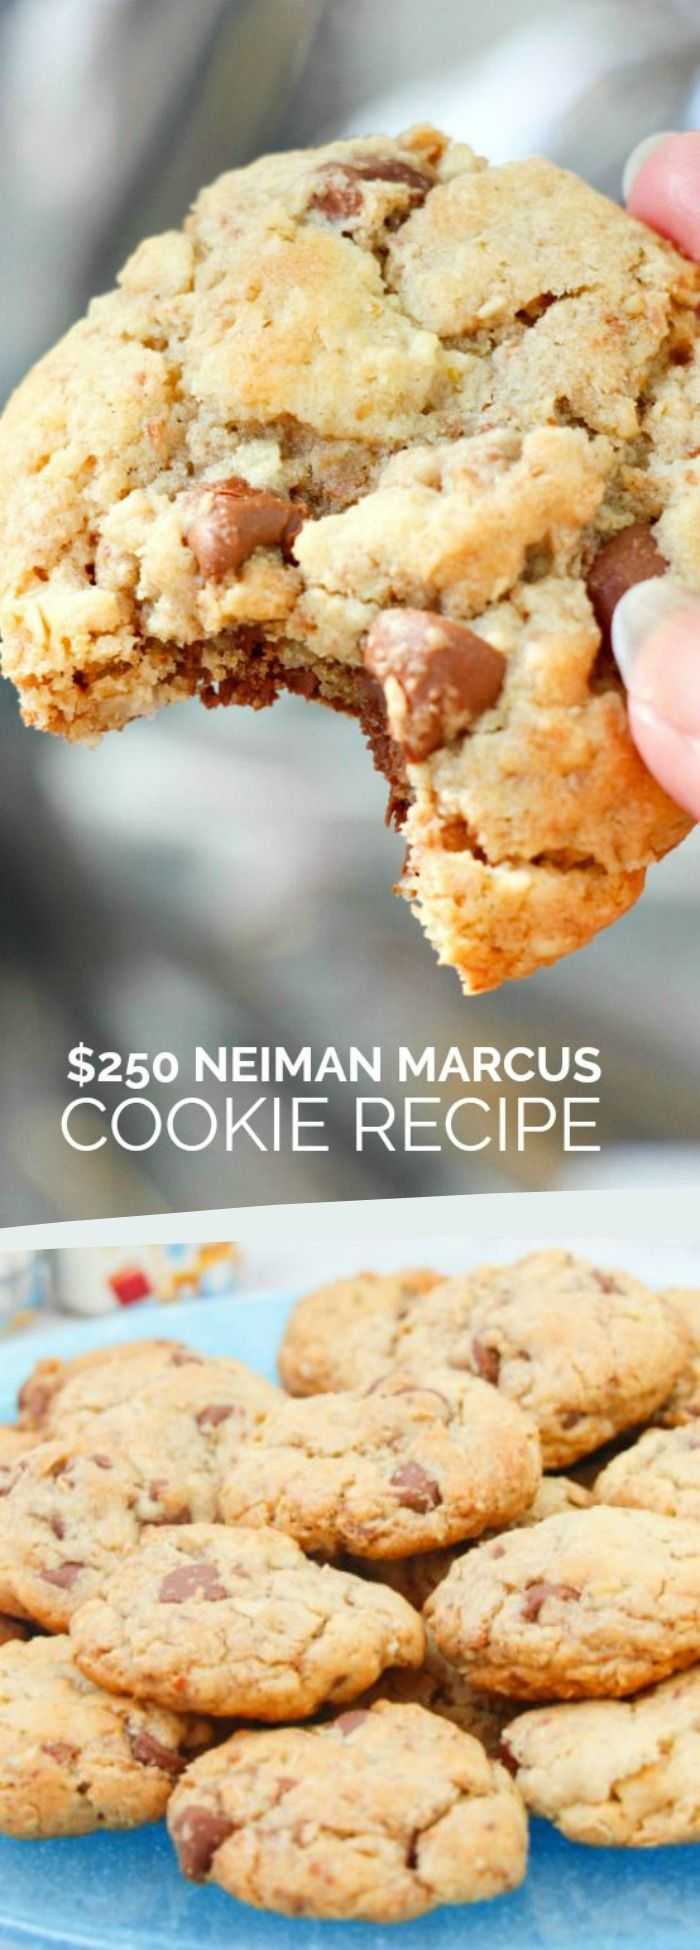 $250 Neiman Marcus Cookie Recipe #Ad #LikeABossBaby